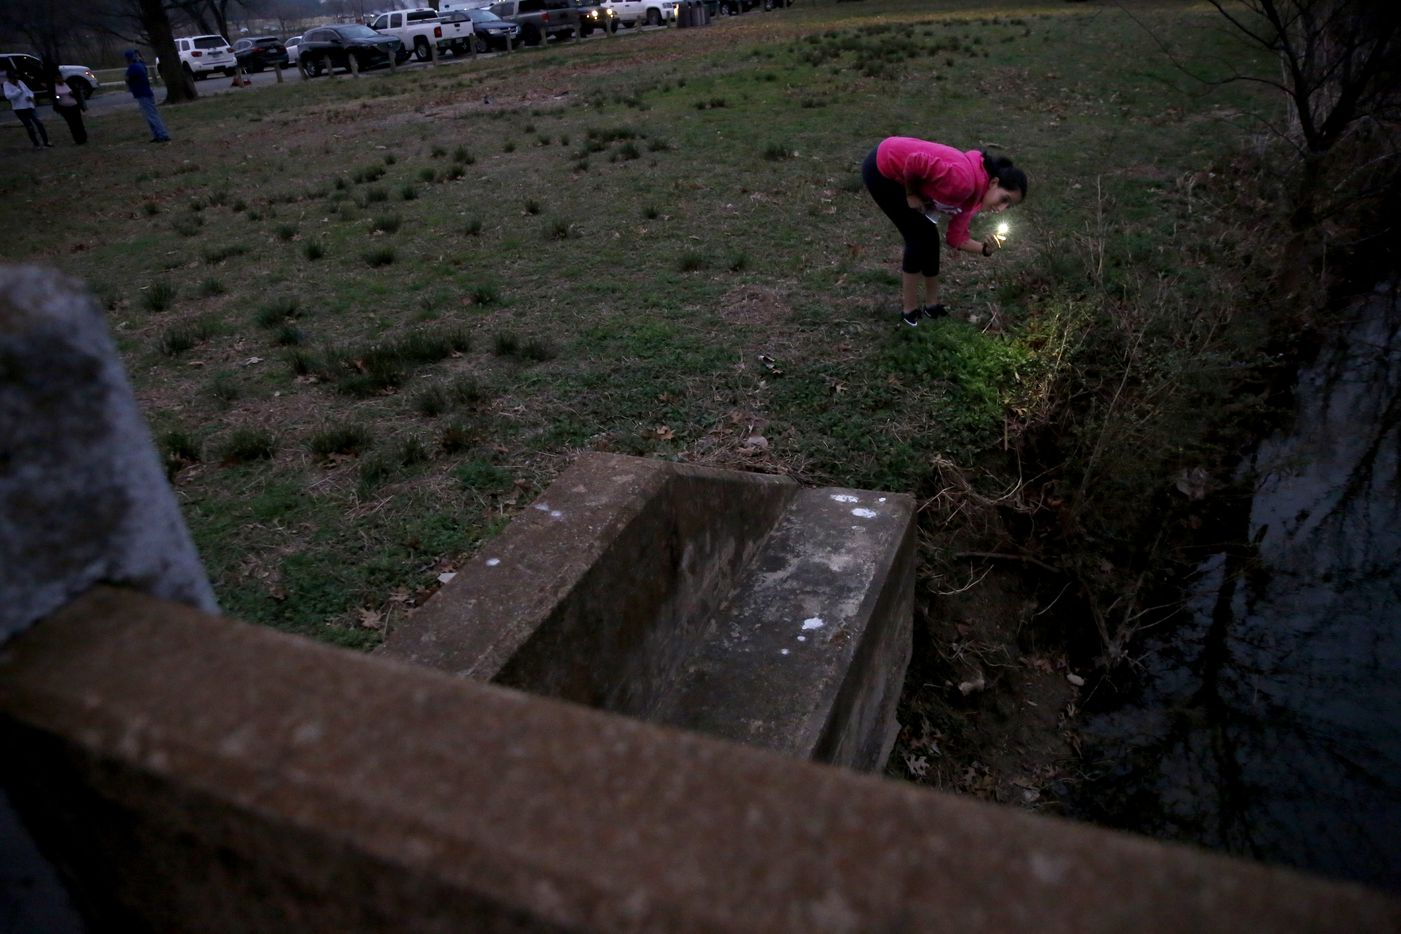 Atziry Mireles searches for her missing sister Weltzin Garcia Mireles, 26, and Alfonso Roderick Hernandez, 28.